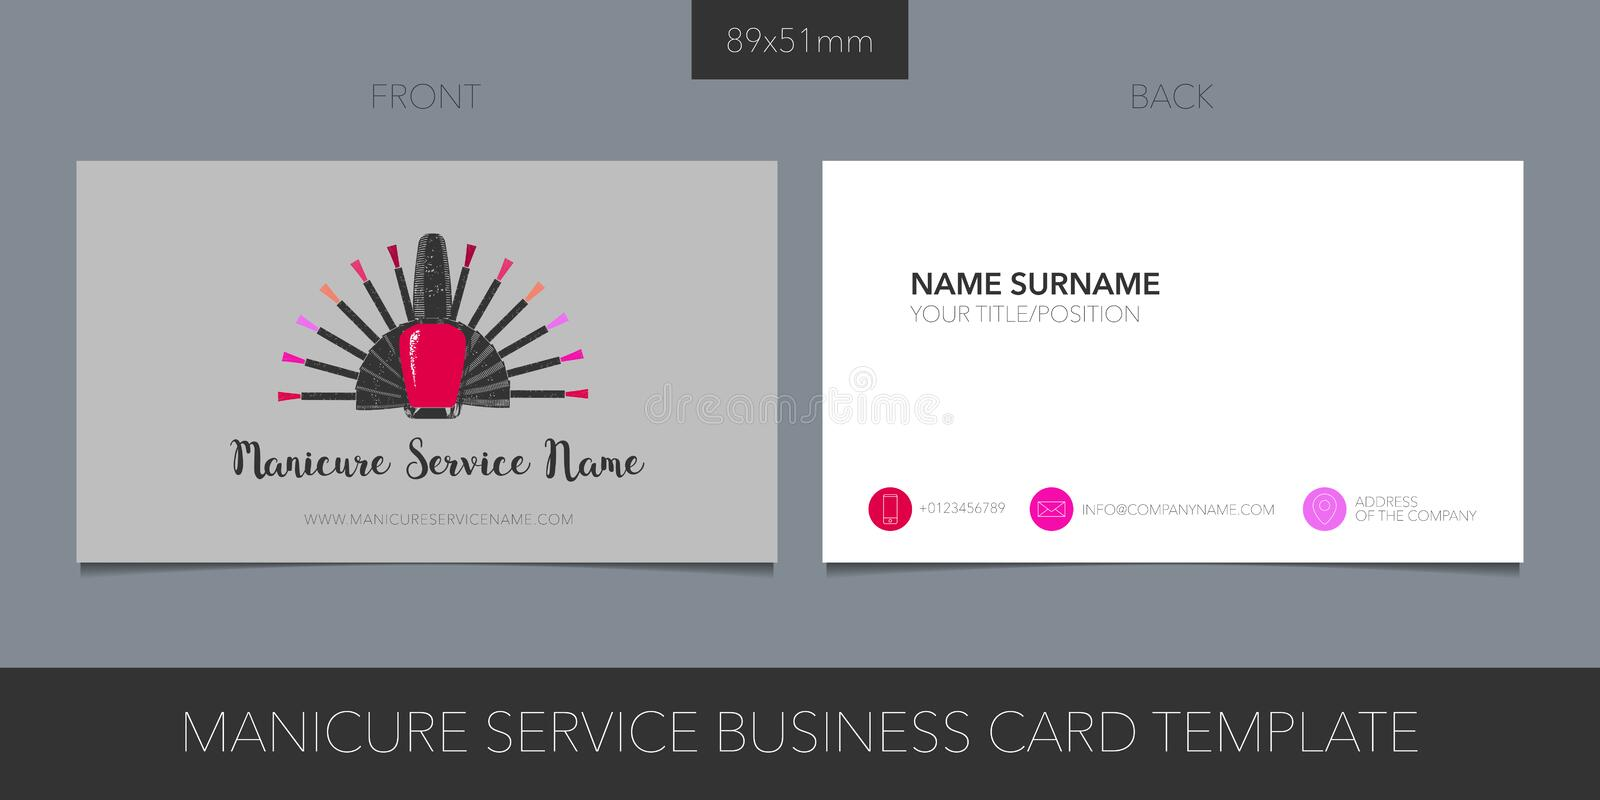 Manicure, nail service vector business card template with corporate logo, icon and contact details stock illustration